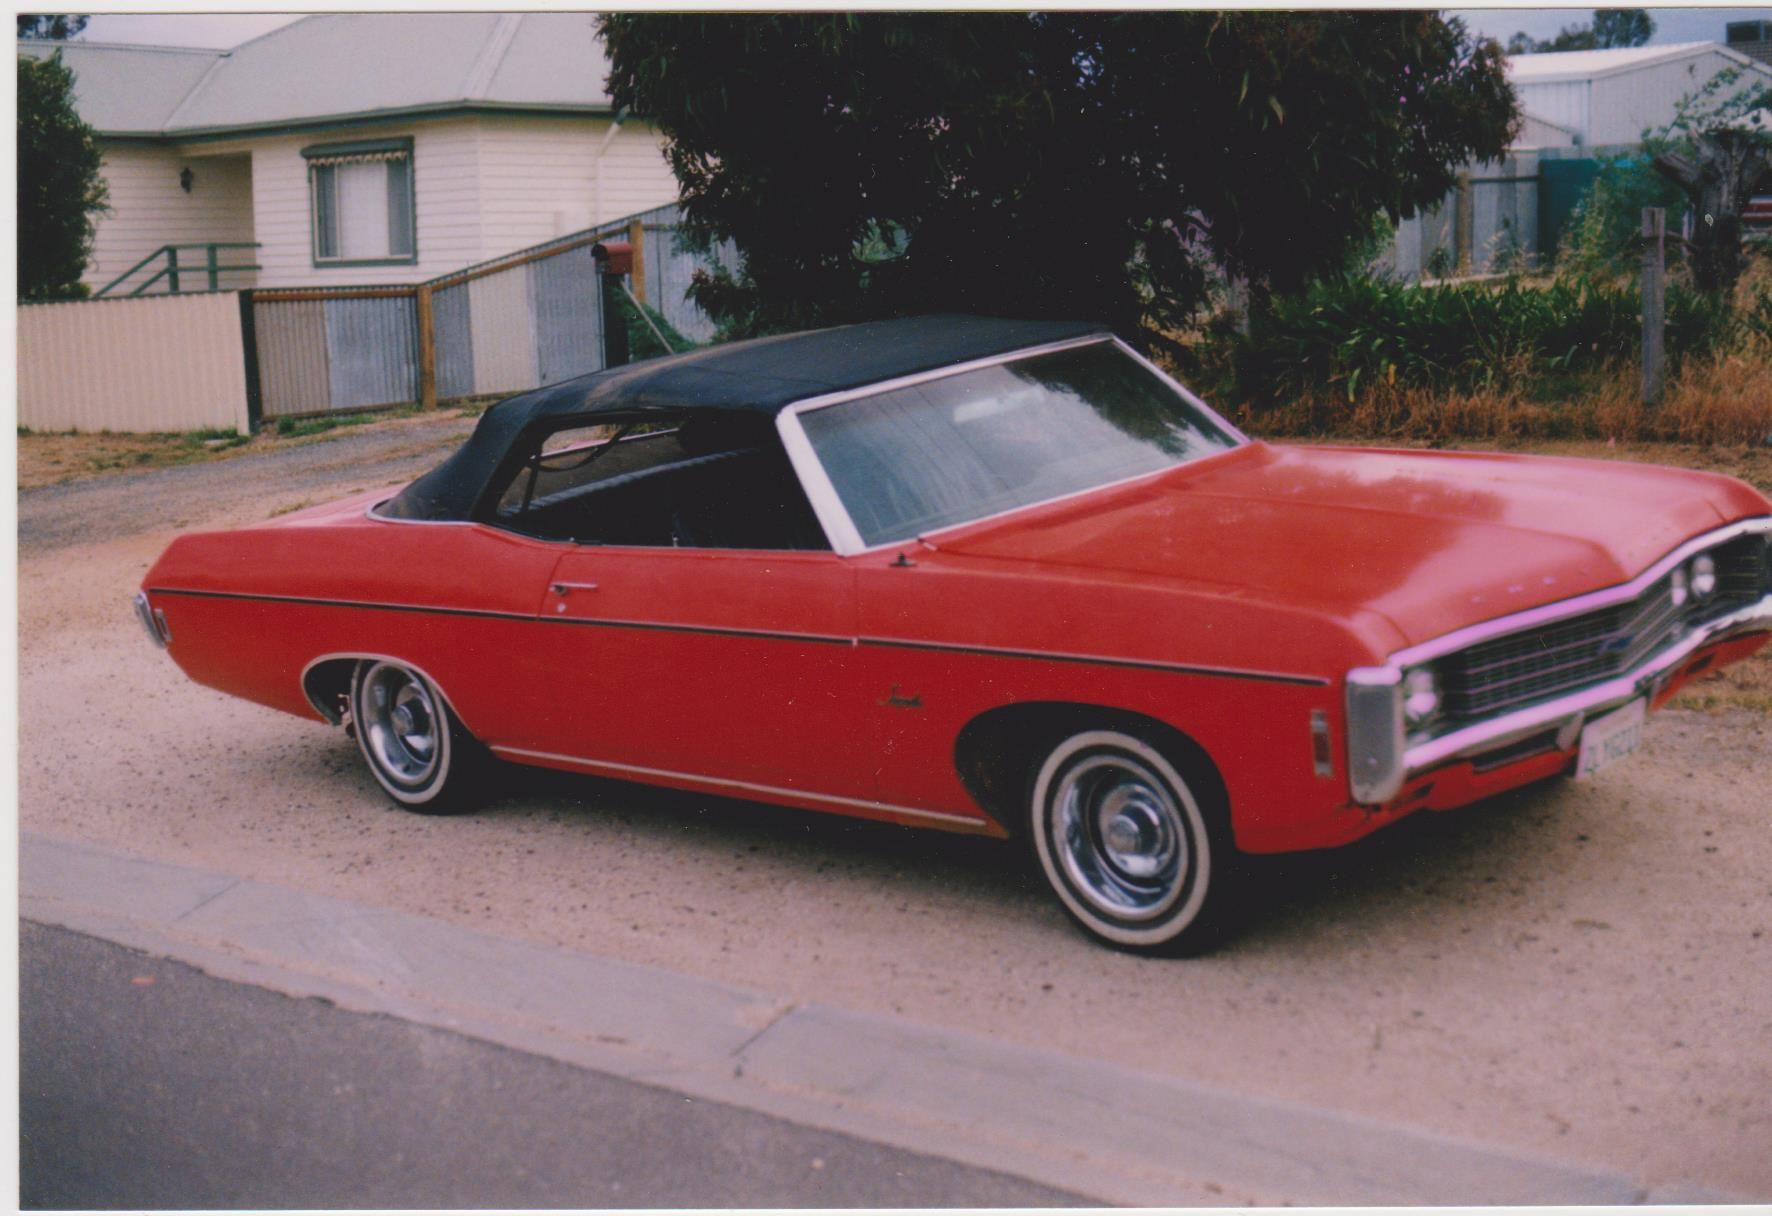 1969 Chev Impala Convertible LHD import late 1970s.